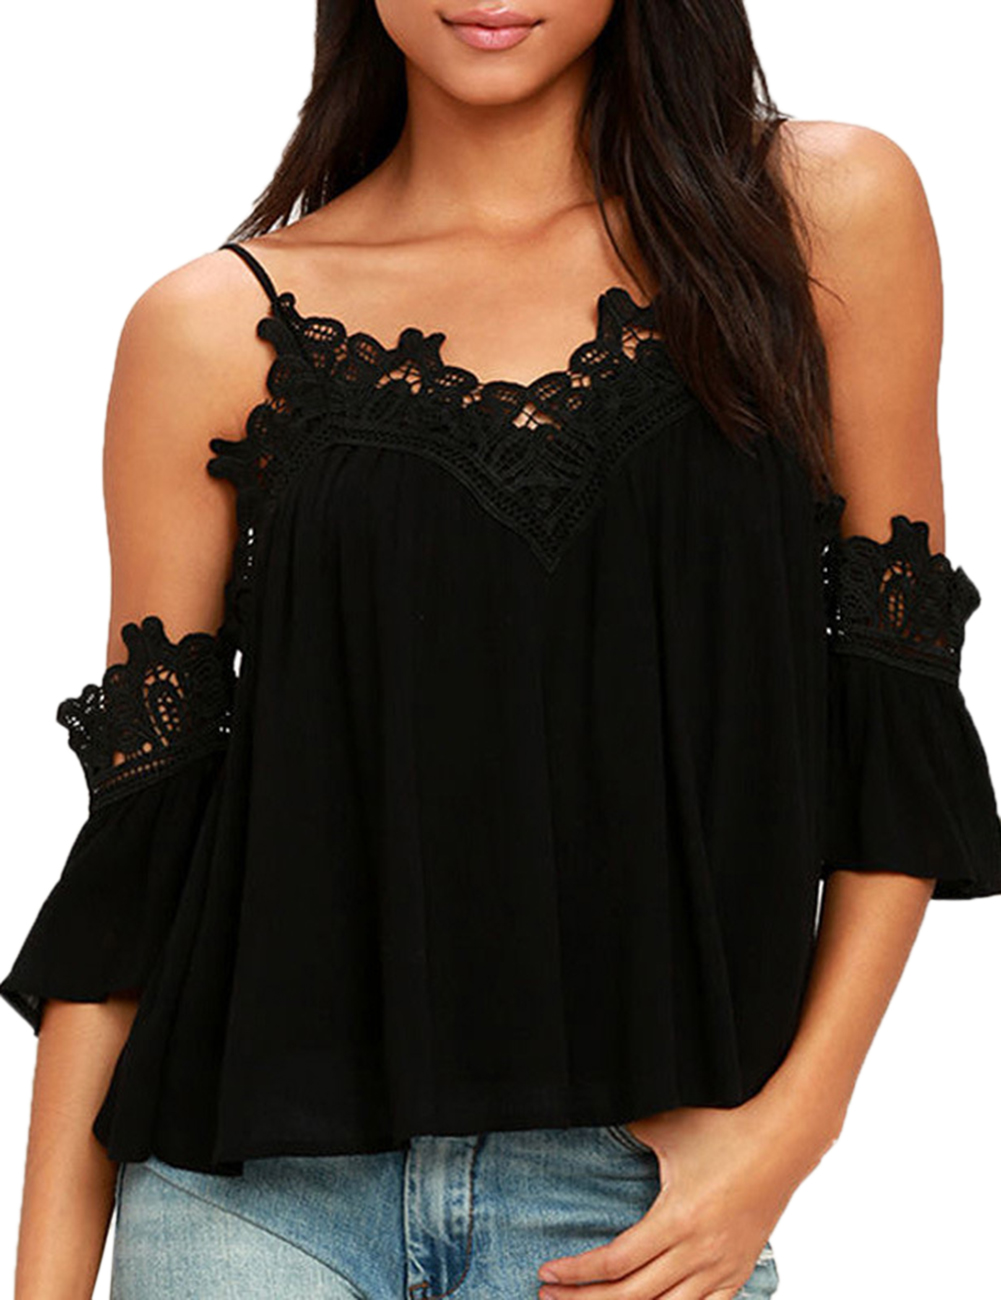 Women Lace Sun-top Off-shoulder Braces Shirt Tops Gift Sexy Beach Party Outfits Home Wear